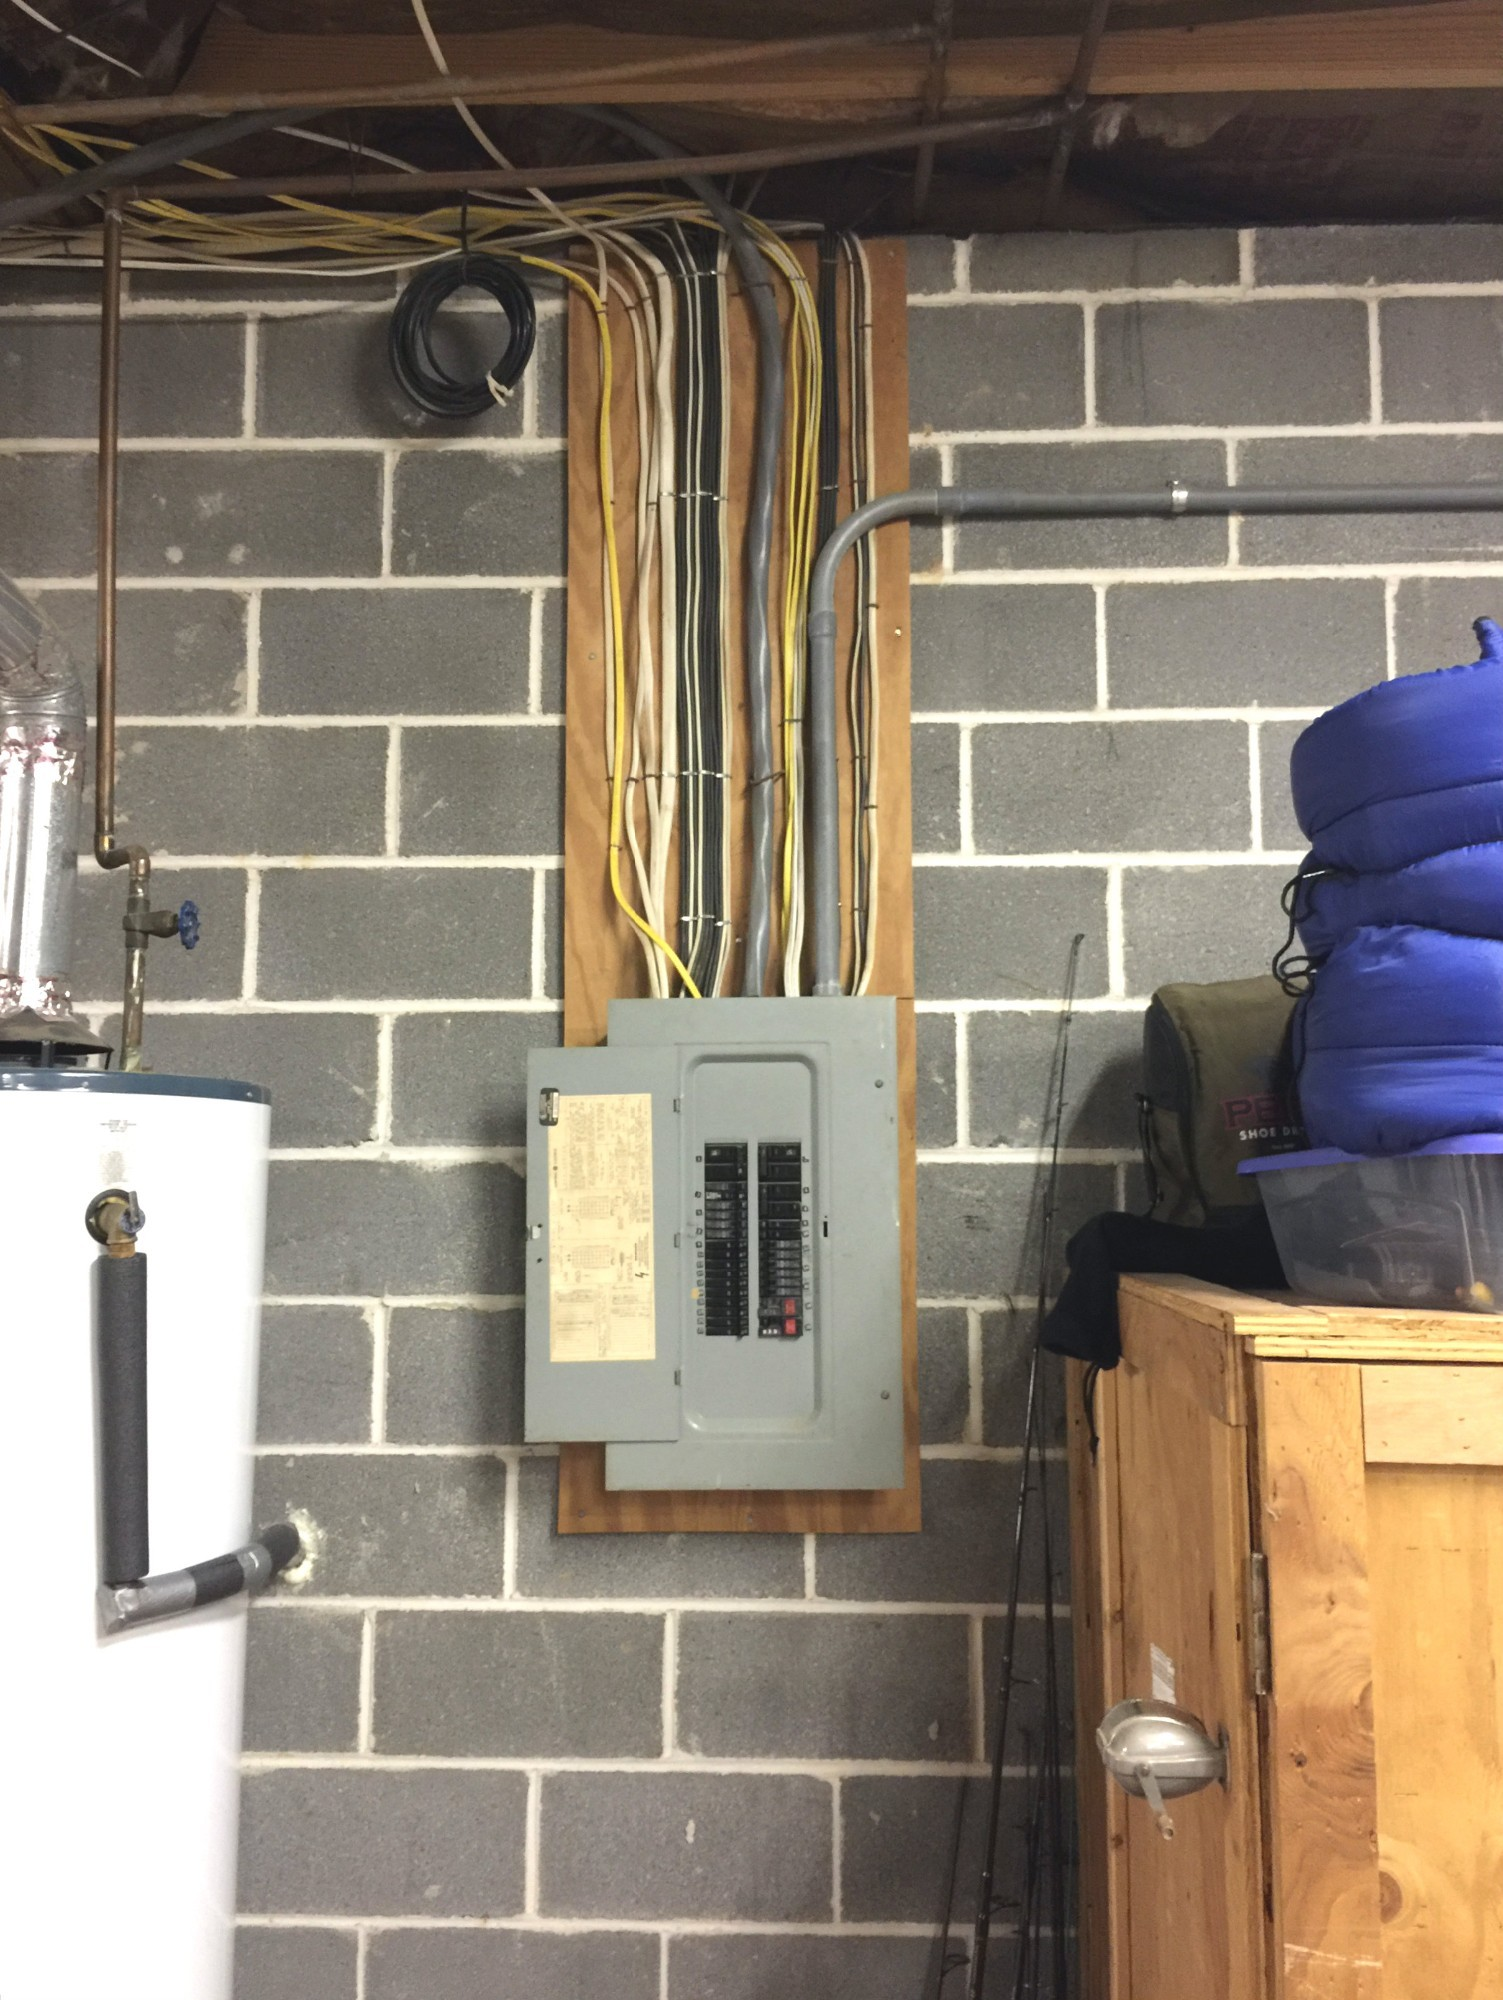 Electrical breaker panel inspection